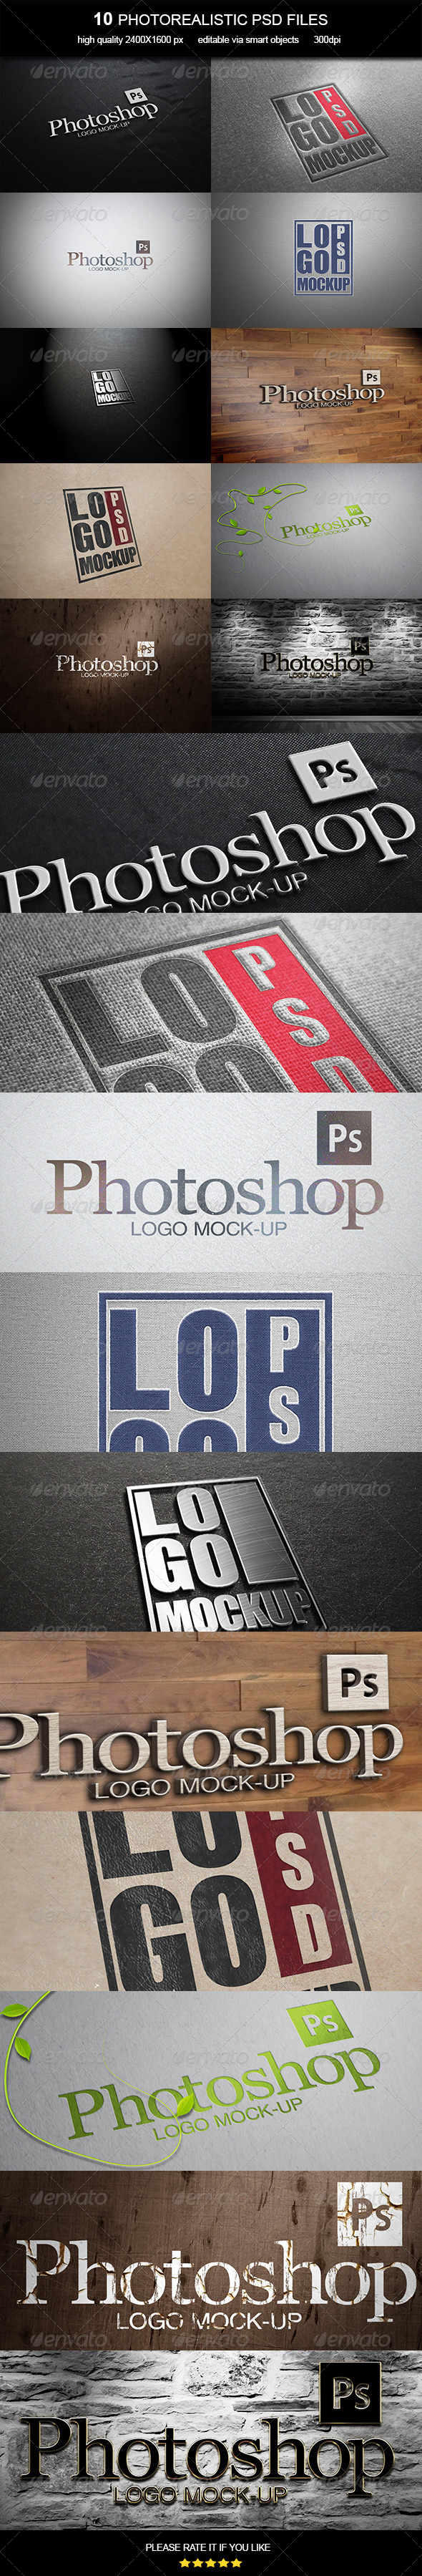 Logo Mock-Up Vol. 6 - Logo Product Mock-Ups